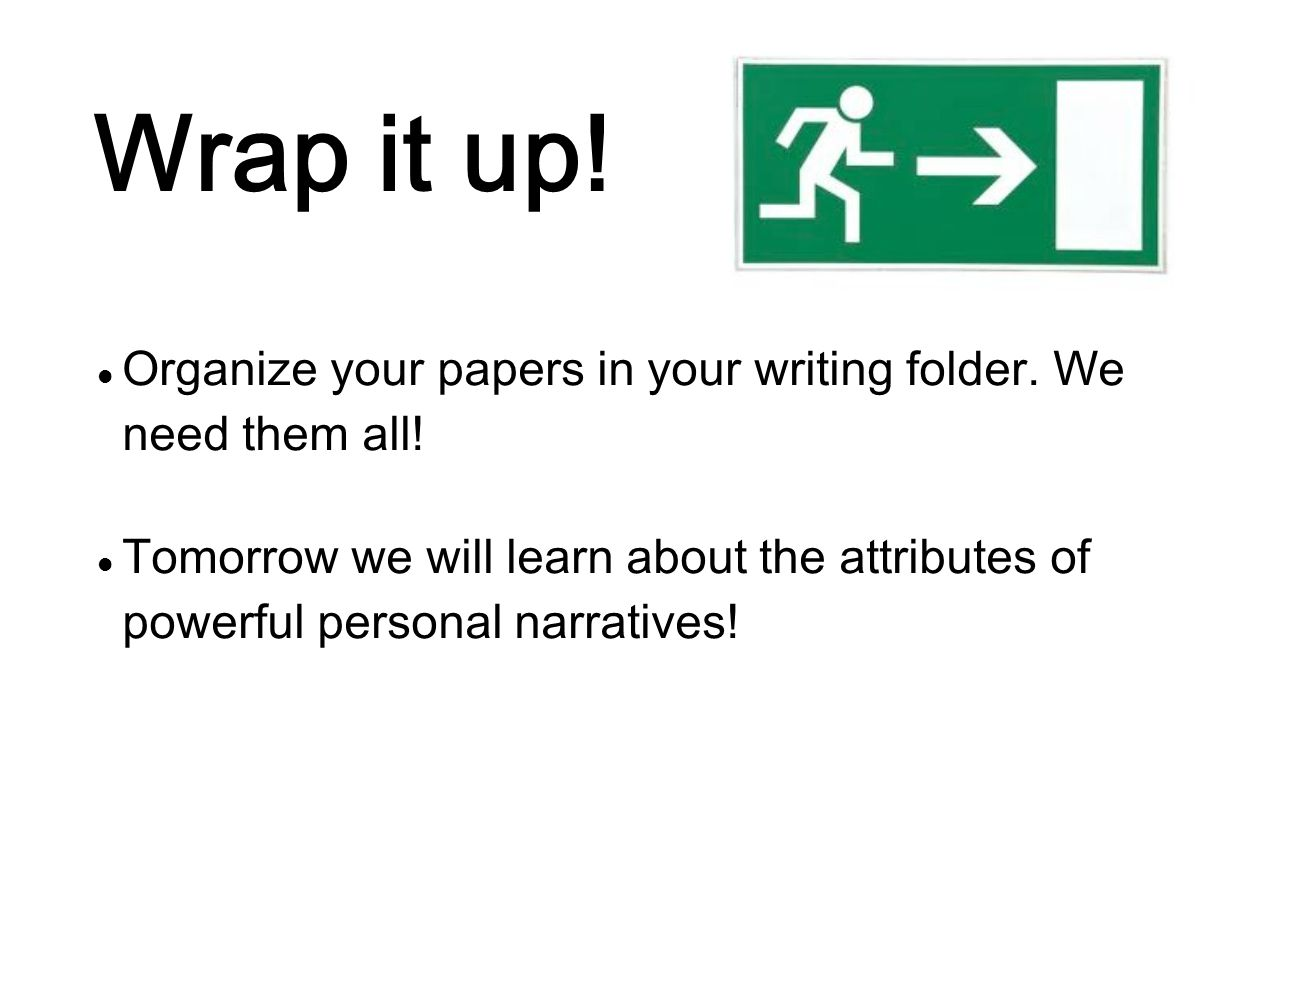 Wrap it up! Organize your papers in your writing folder. We need them all!